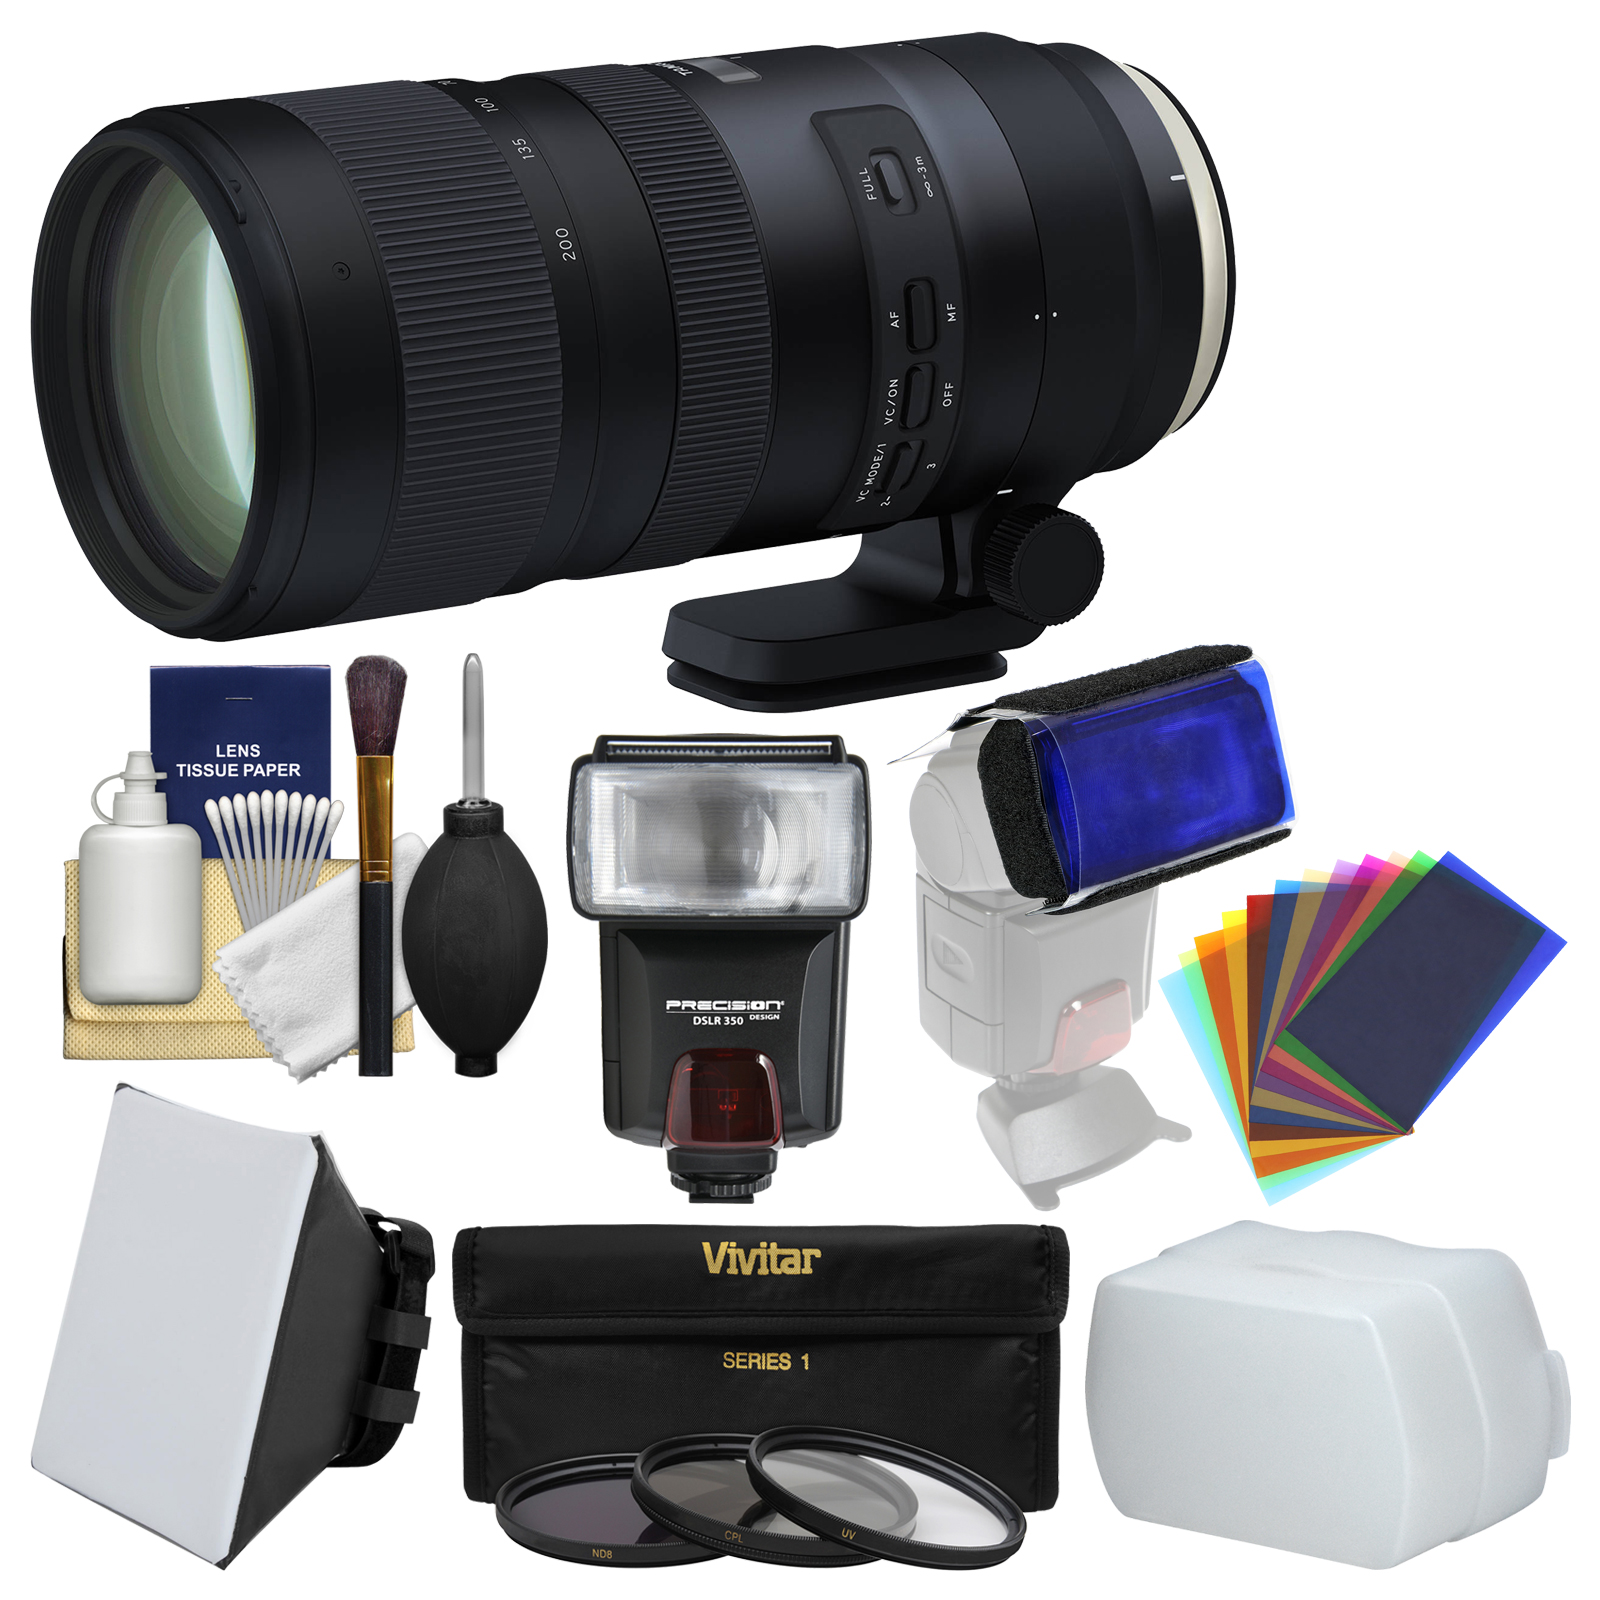 Tamron 70-200mm f/2.8 Di VC USD G2 Zoom Lens + 3 UV/CPL/N...